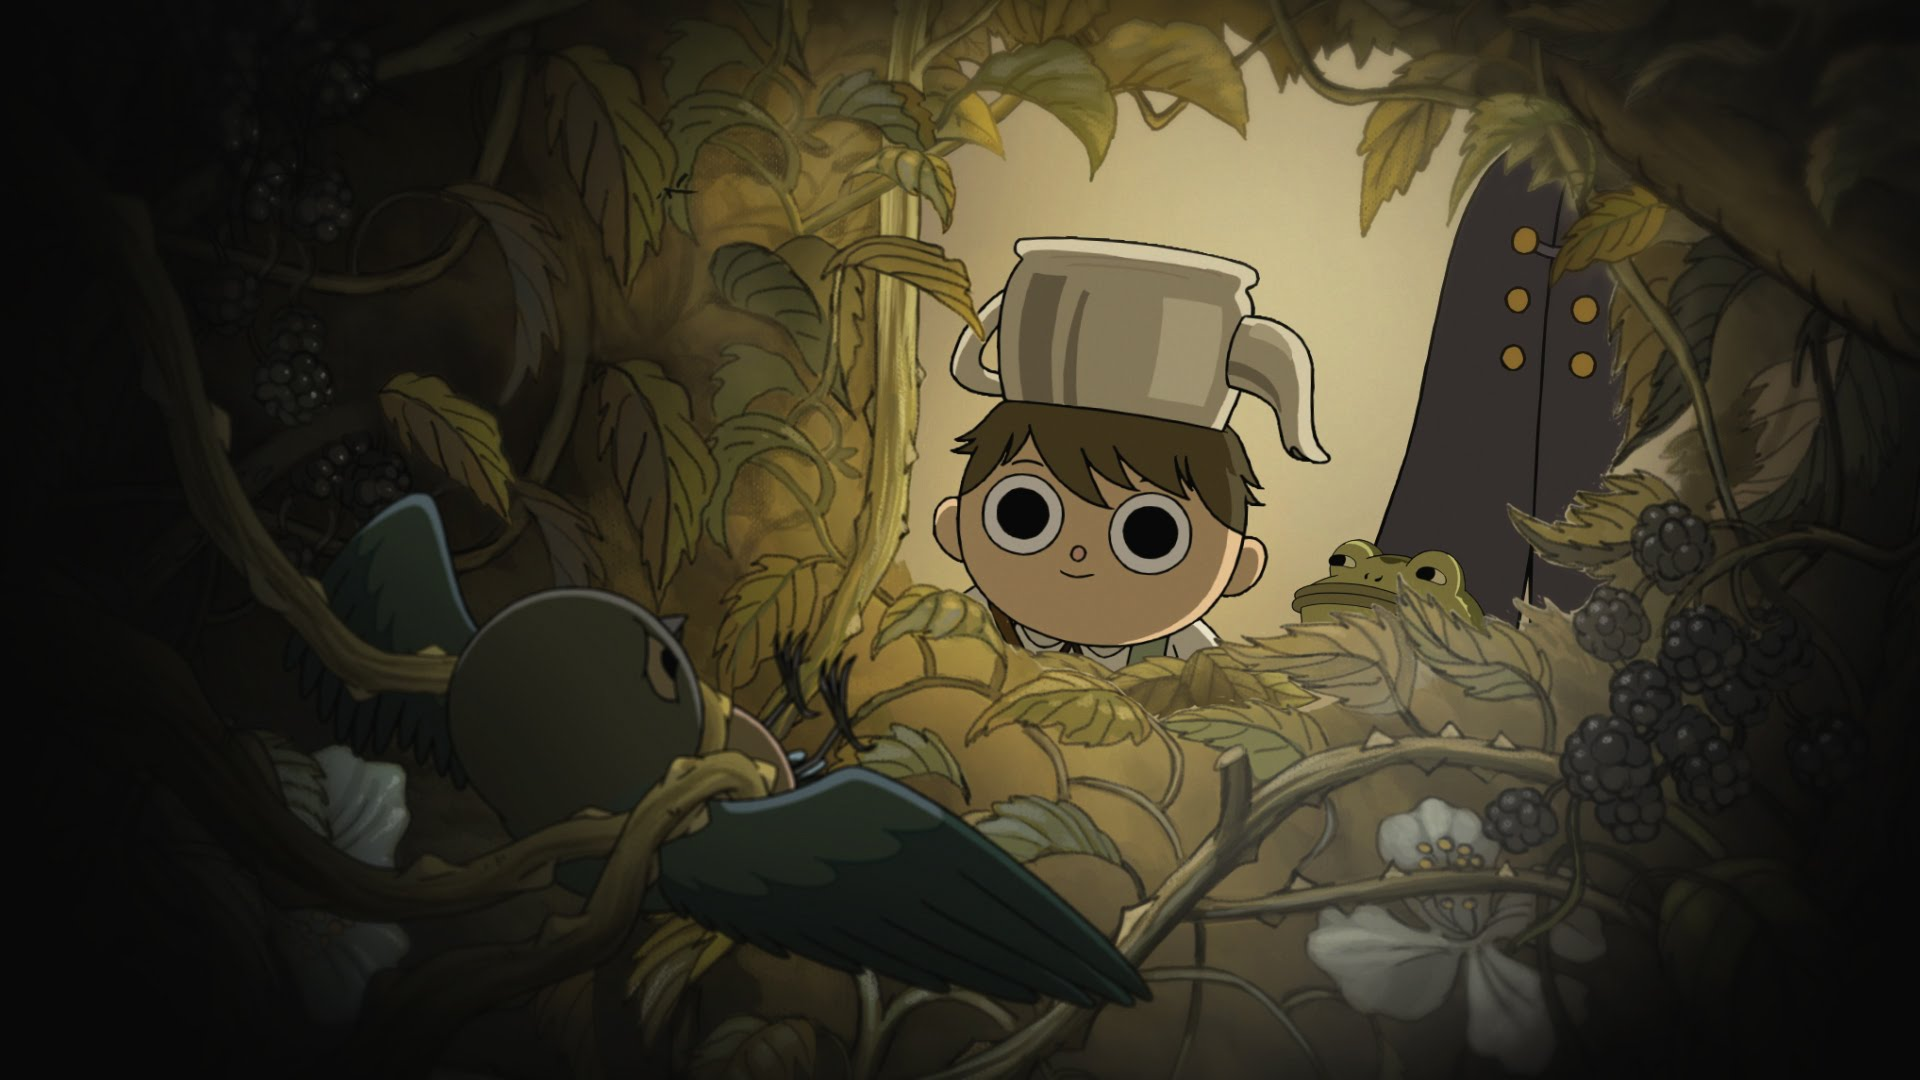 Over The Garden Wall From The Perspective Of An Old Soul